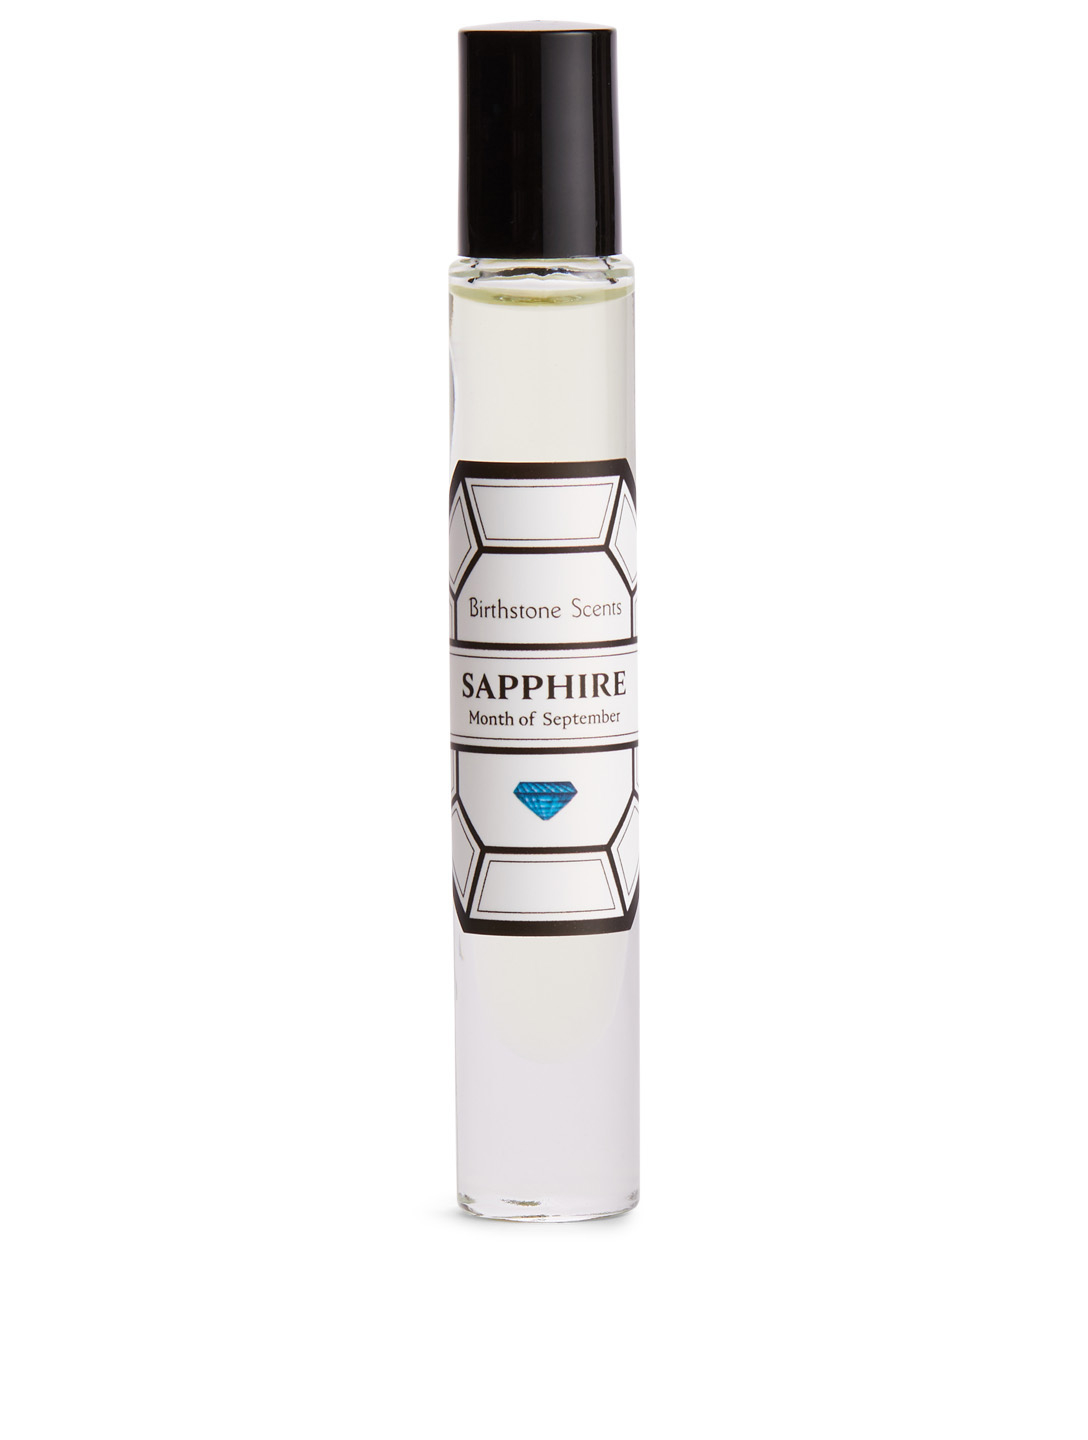 BIRTHSTONE SCENTS Sapphire Roll-On Perfume Oil H Project